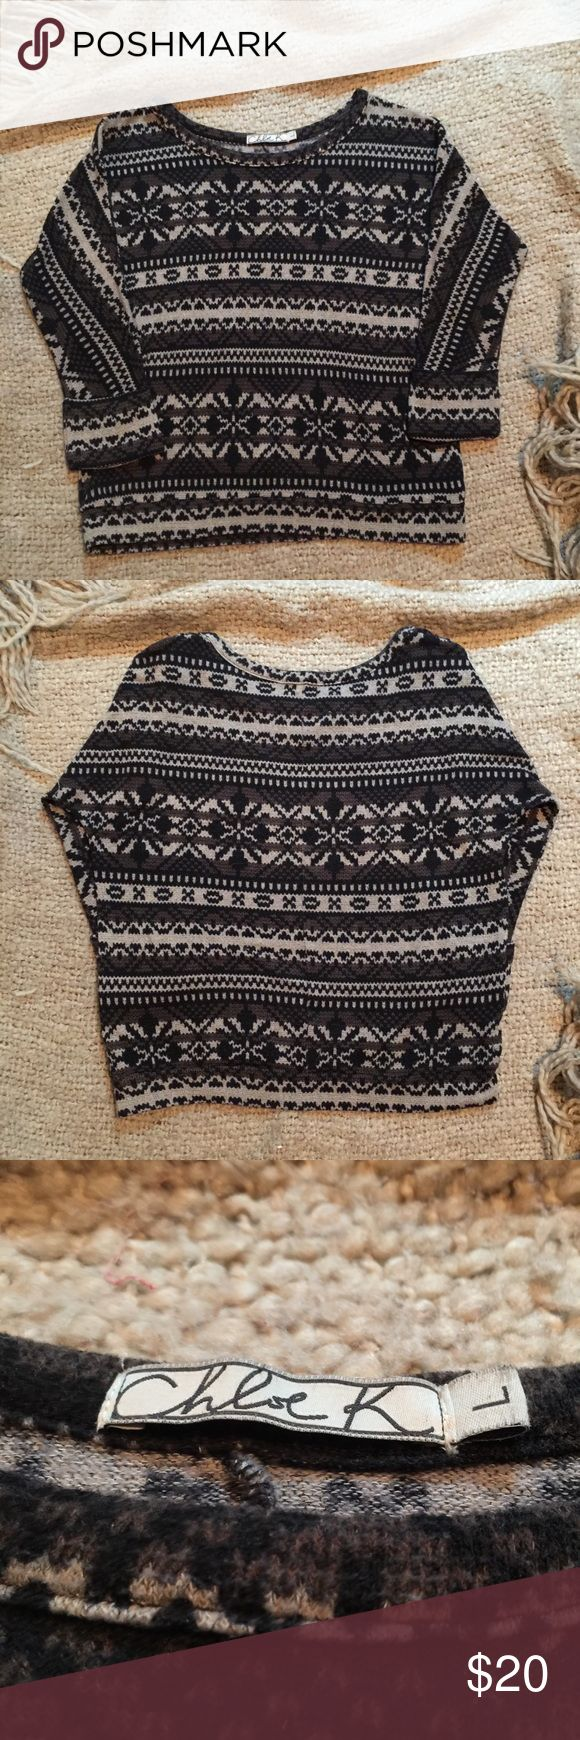 Chloe K Aztec Tribal Sweater Chloe K Aztec Tribal Sweater! 3/4 sleeve with rolled cuffs. From a clean smoke and animal free home. Open to offers! Chloe K Sweaters Crew & Scoop Necks